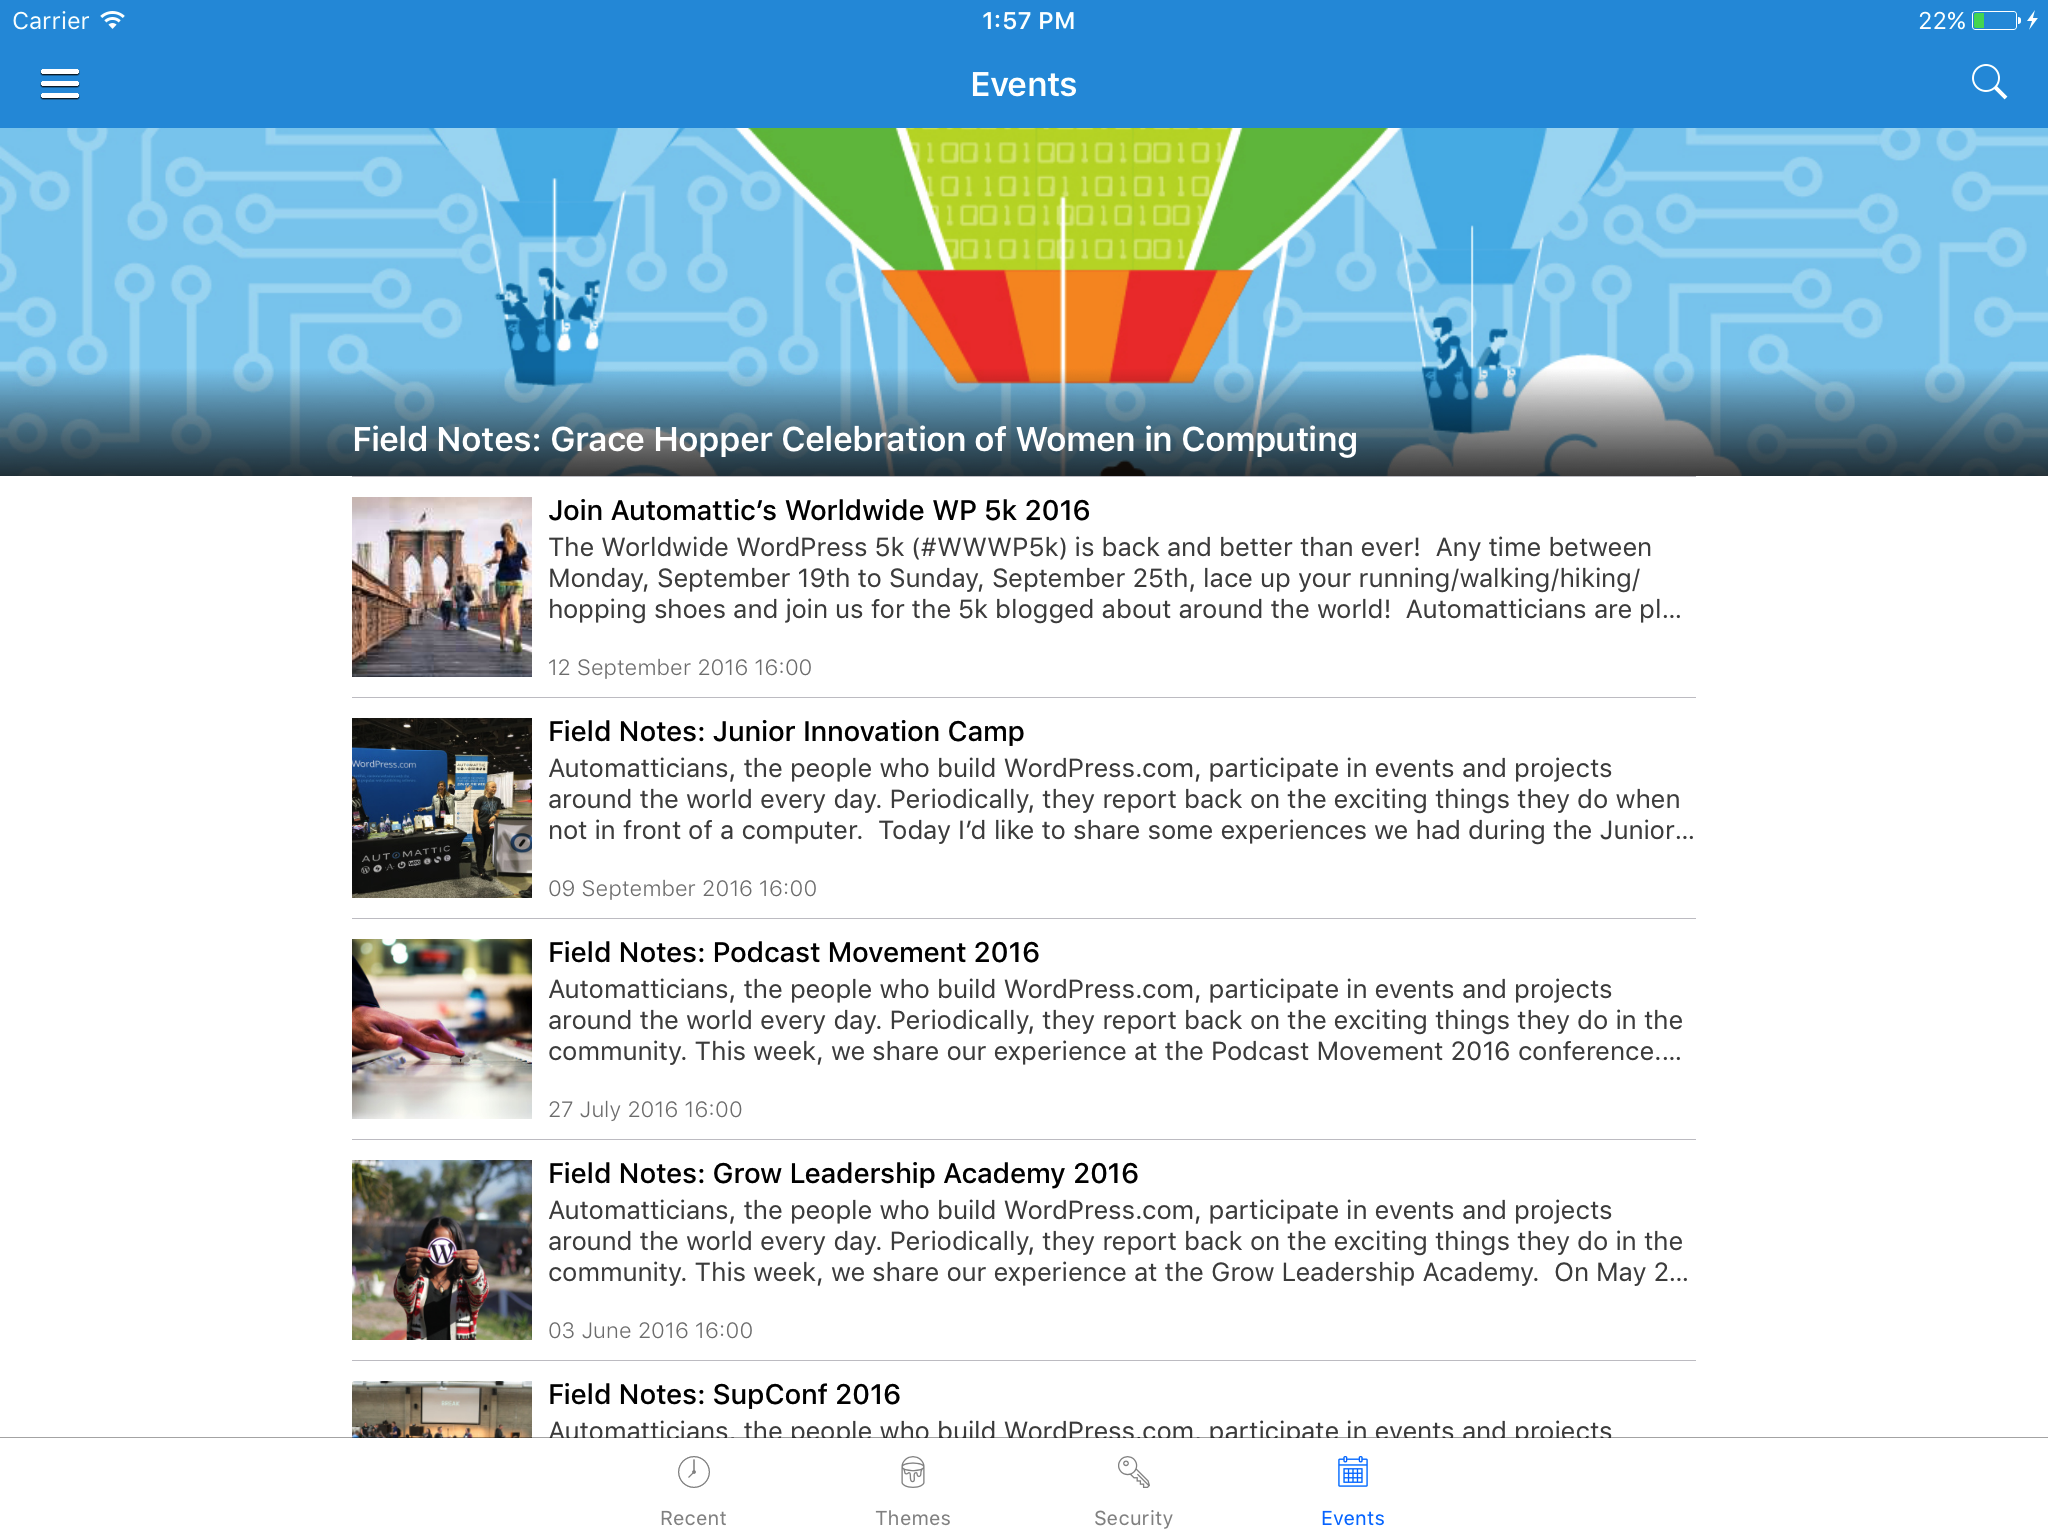 Universal for IOS - Full Multi-Purpose IOS app by sherdleapps ...